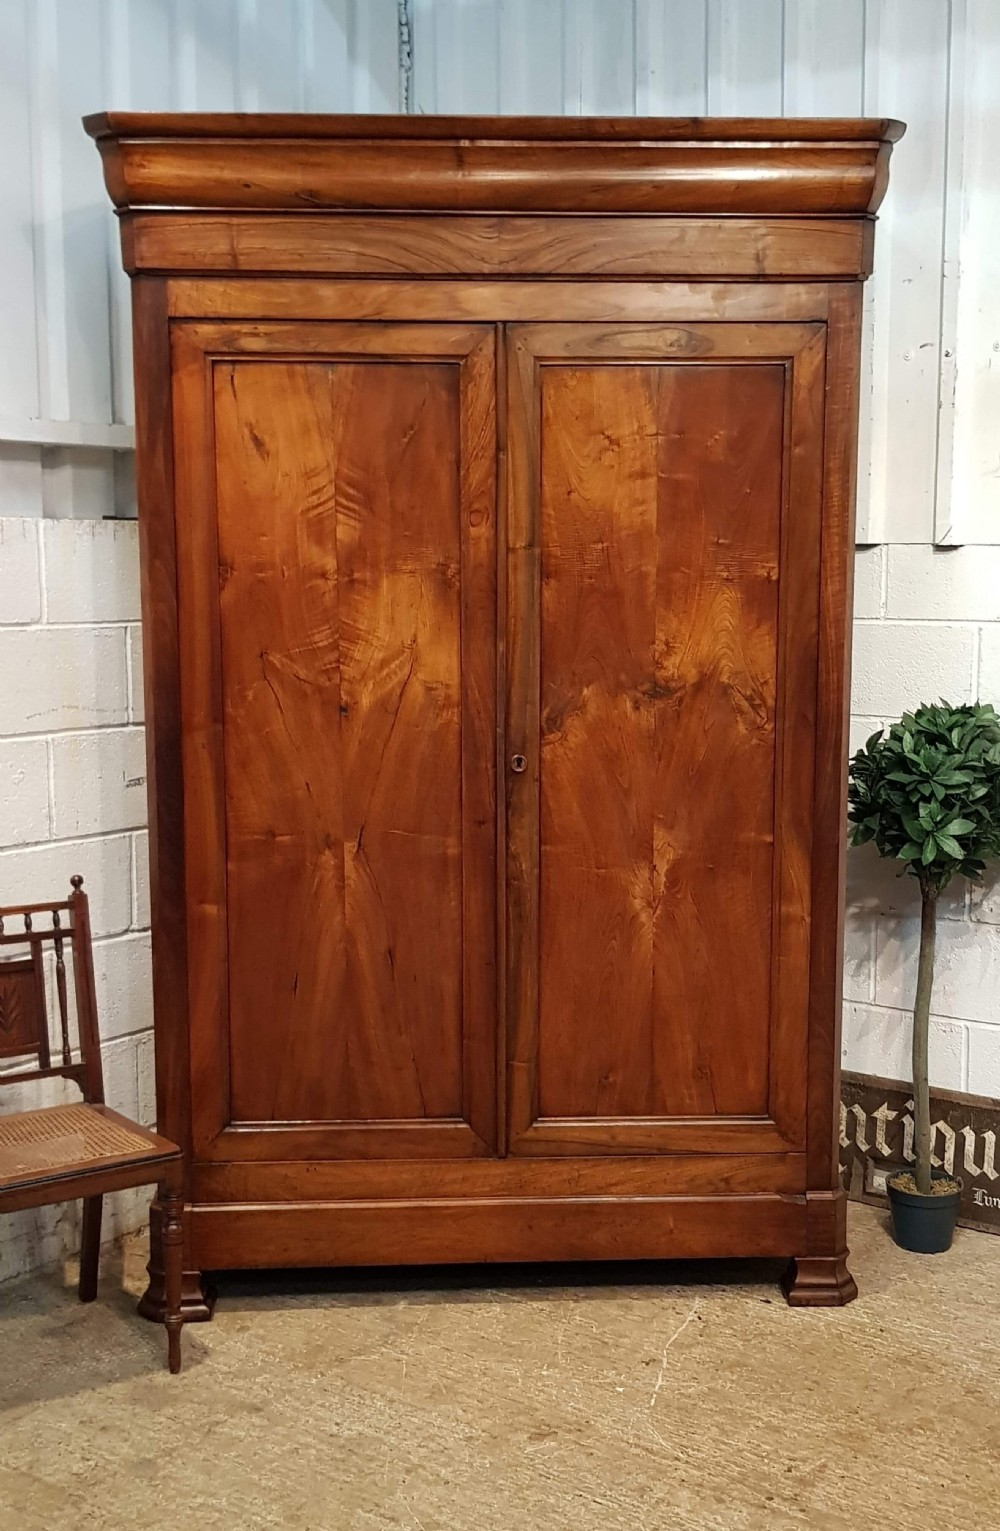 antique large french provincial fruitwood armoire wardrobe with secret drawer c1860